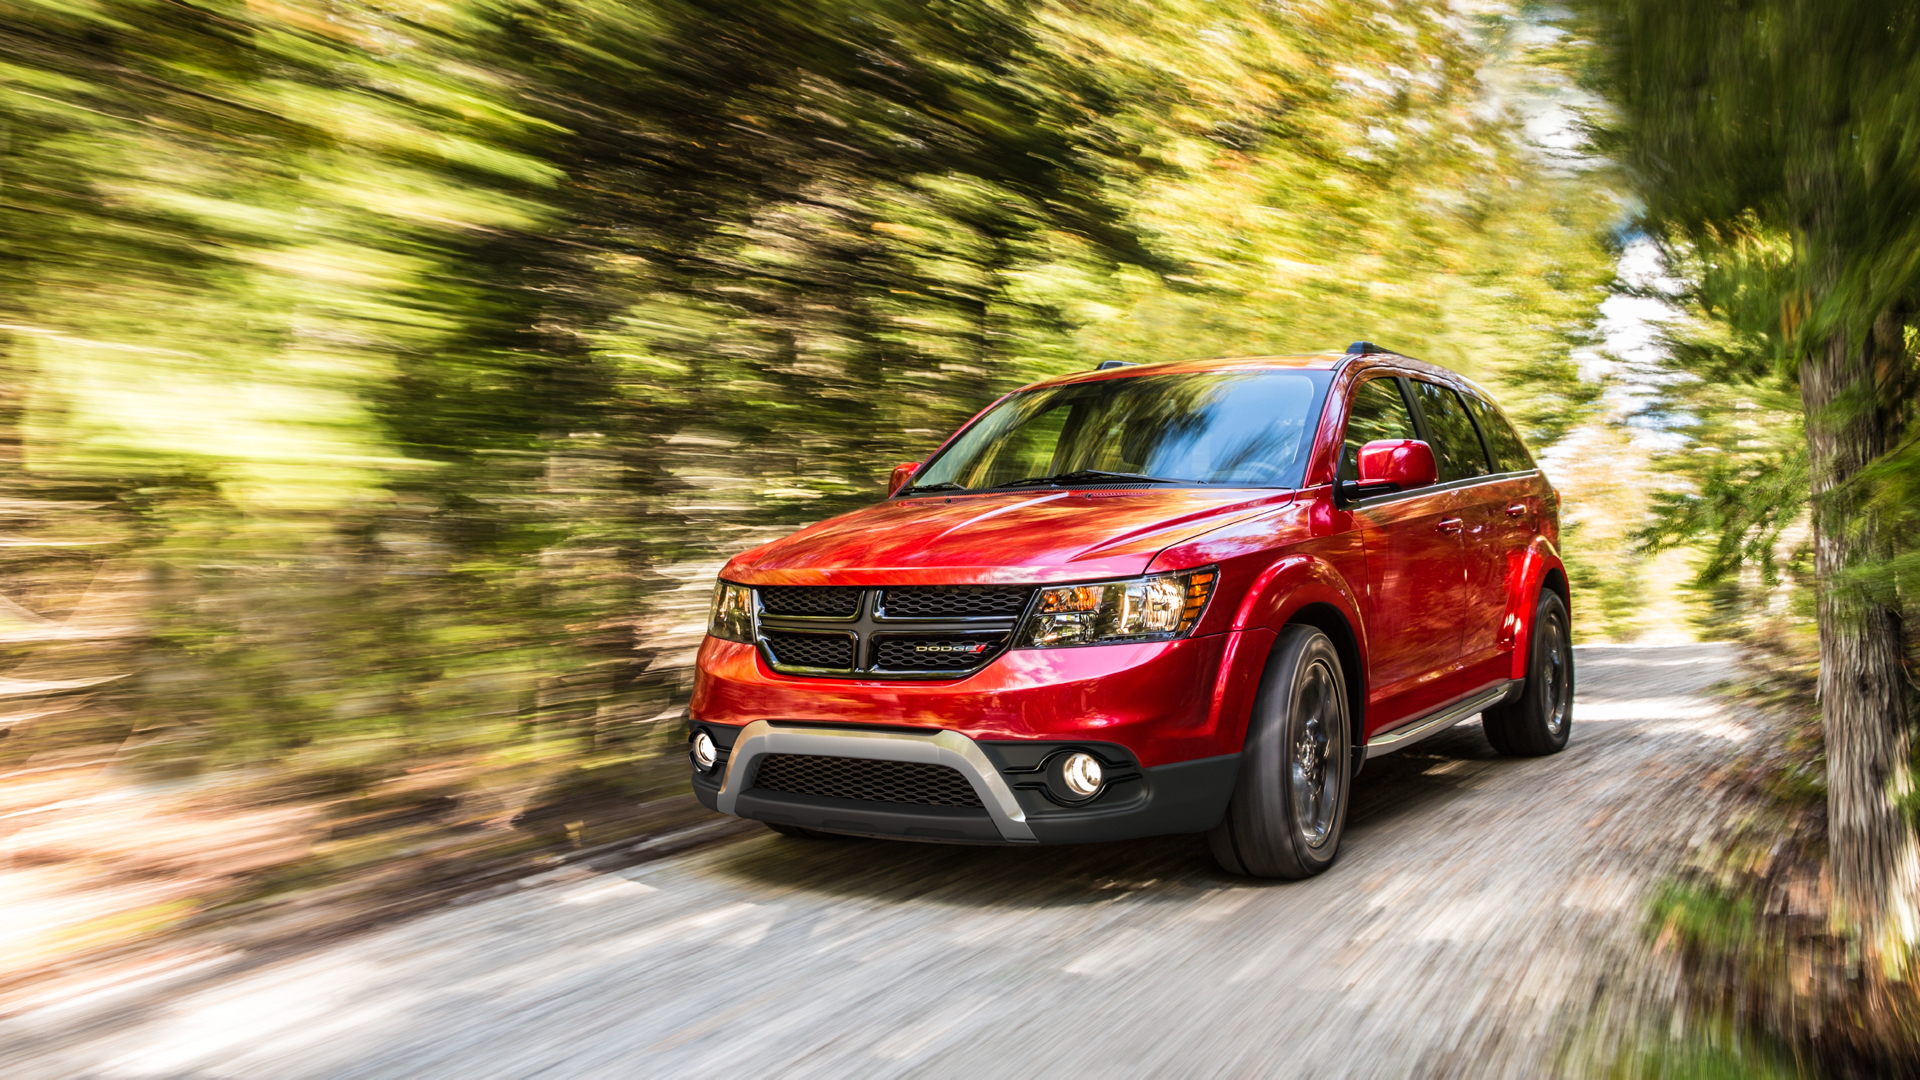 35 American Cars To Buy When the Auto Industry Is Back